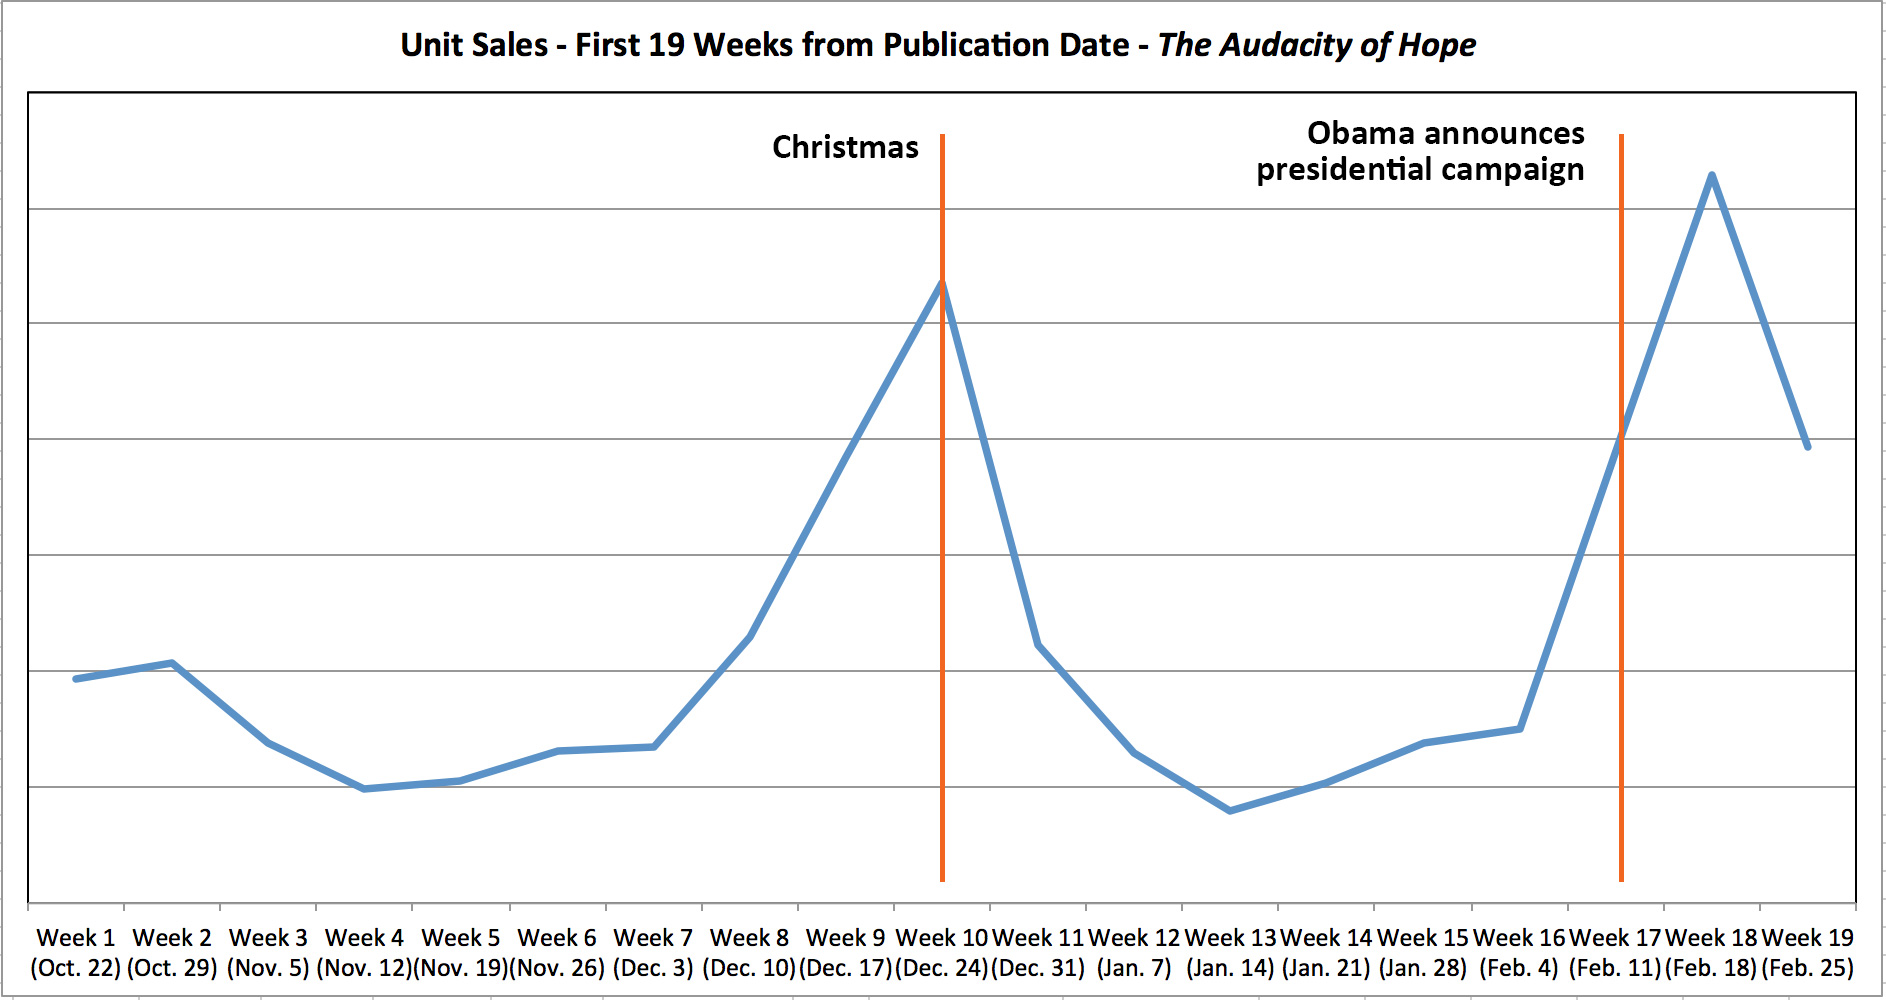 Graph showing the first 19 weeks of unit sales for The Audacity of Hope.